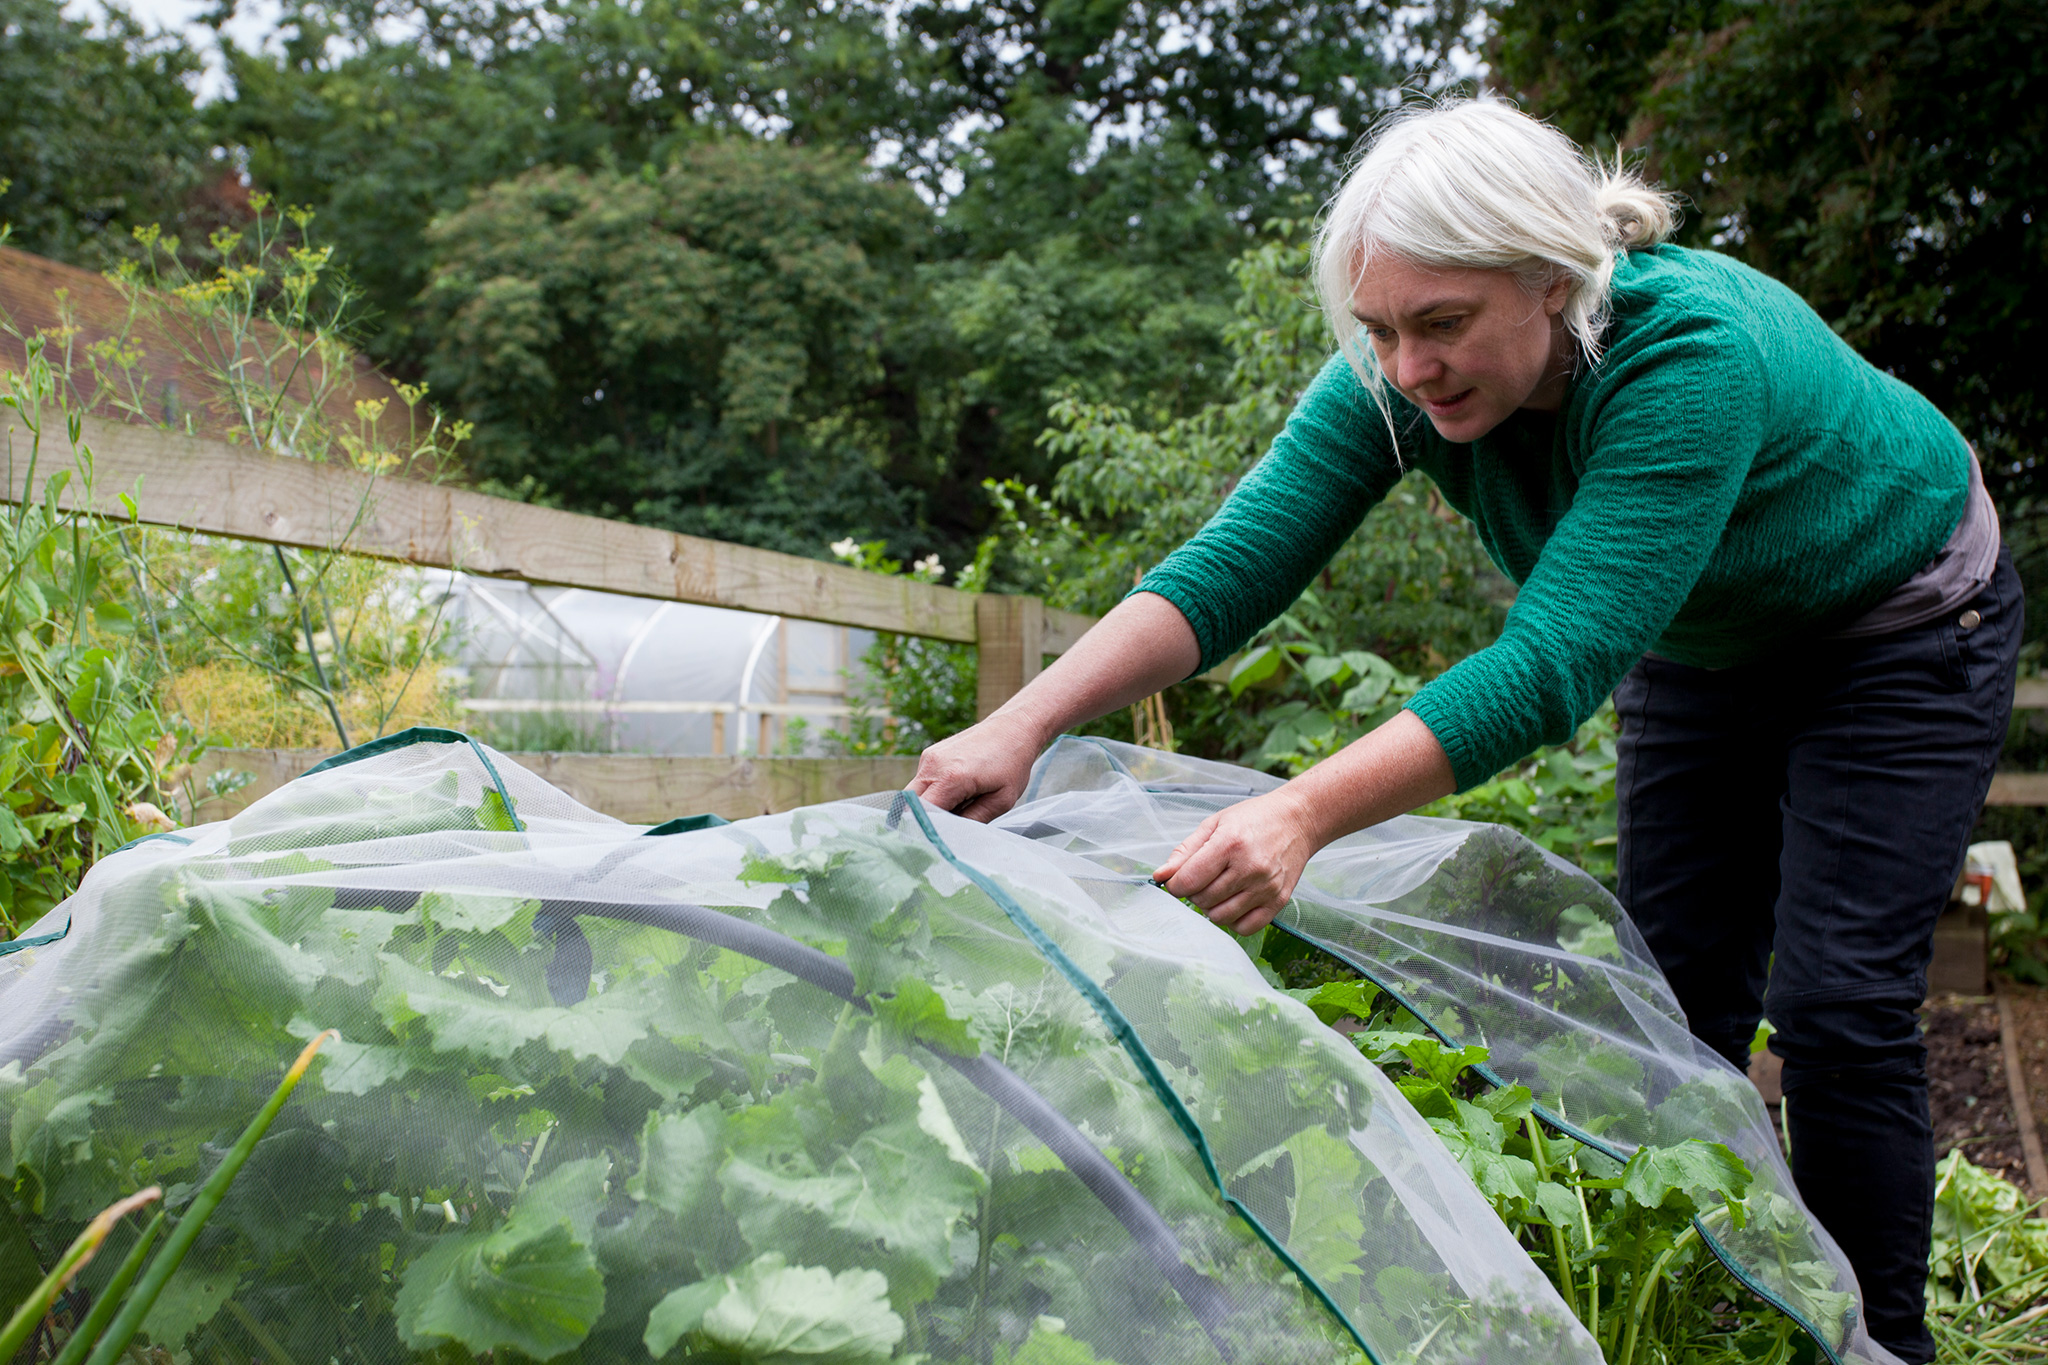 Allotment jobs for November - covering crops